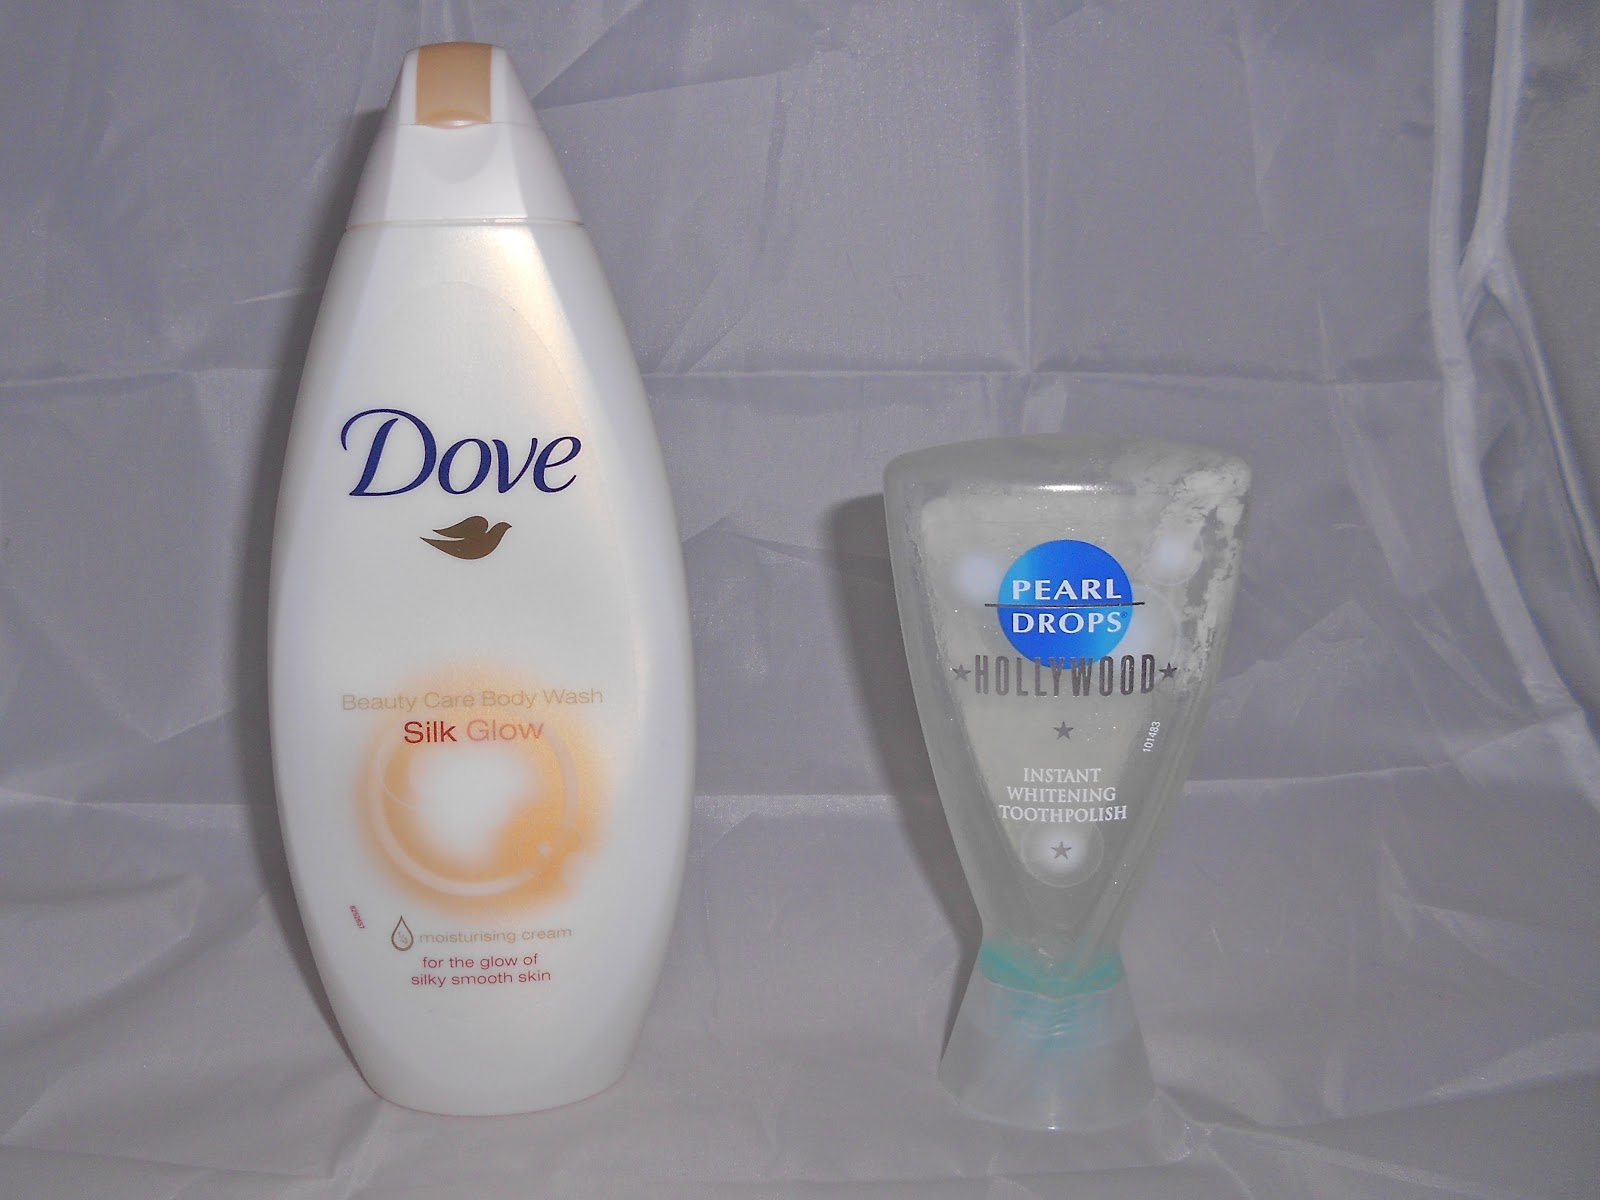 Dove shower gel and Pearl Drops toothpaste